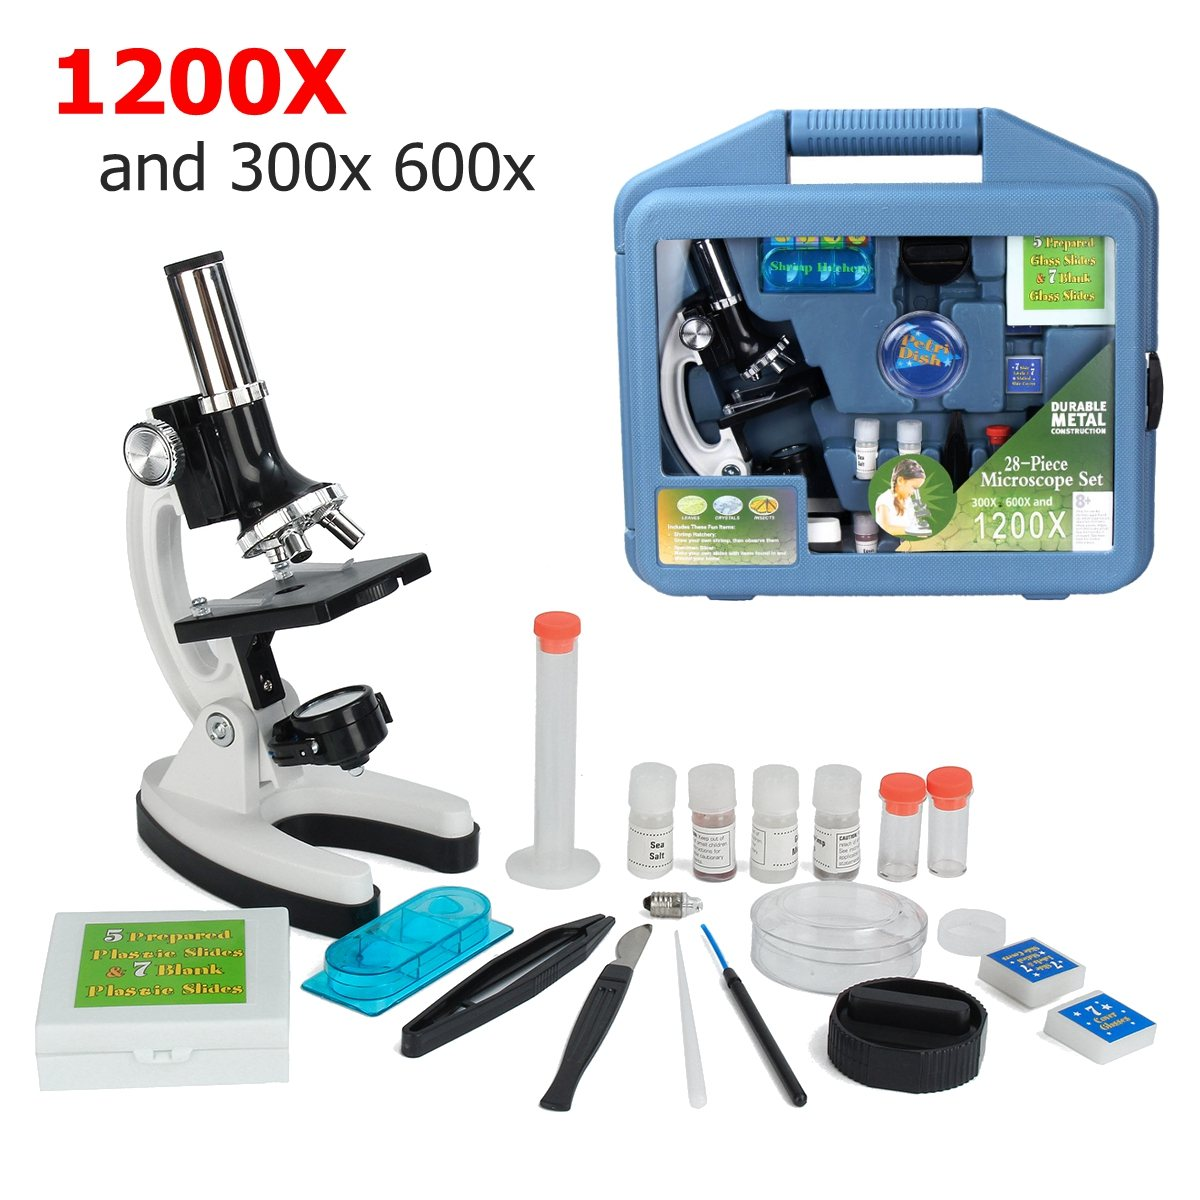 300X 600X 1200X Microscope Kit Magnification Case Kids 28-P iece Beginners Monocular Biol ogical For Children Education Toy dhl free shipping top quality 900x microscope with 28 piece kit alloy material for students kids education